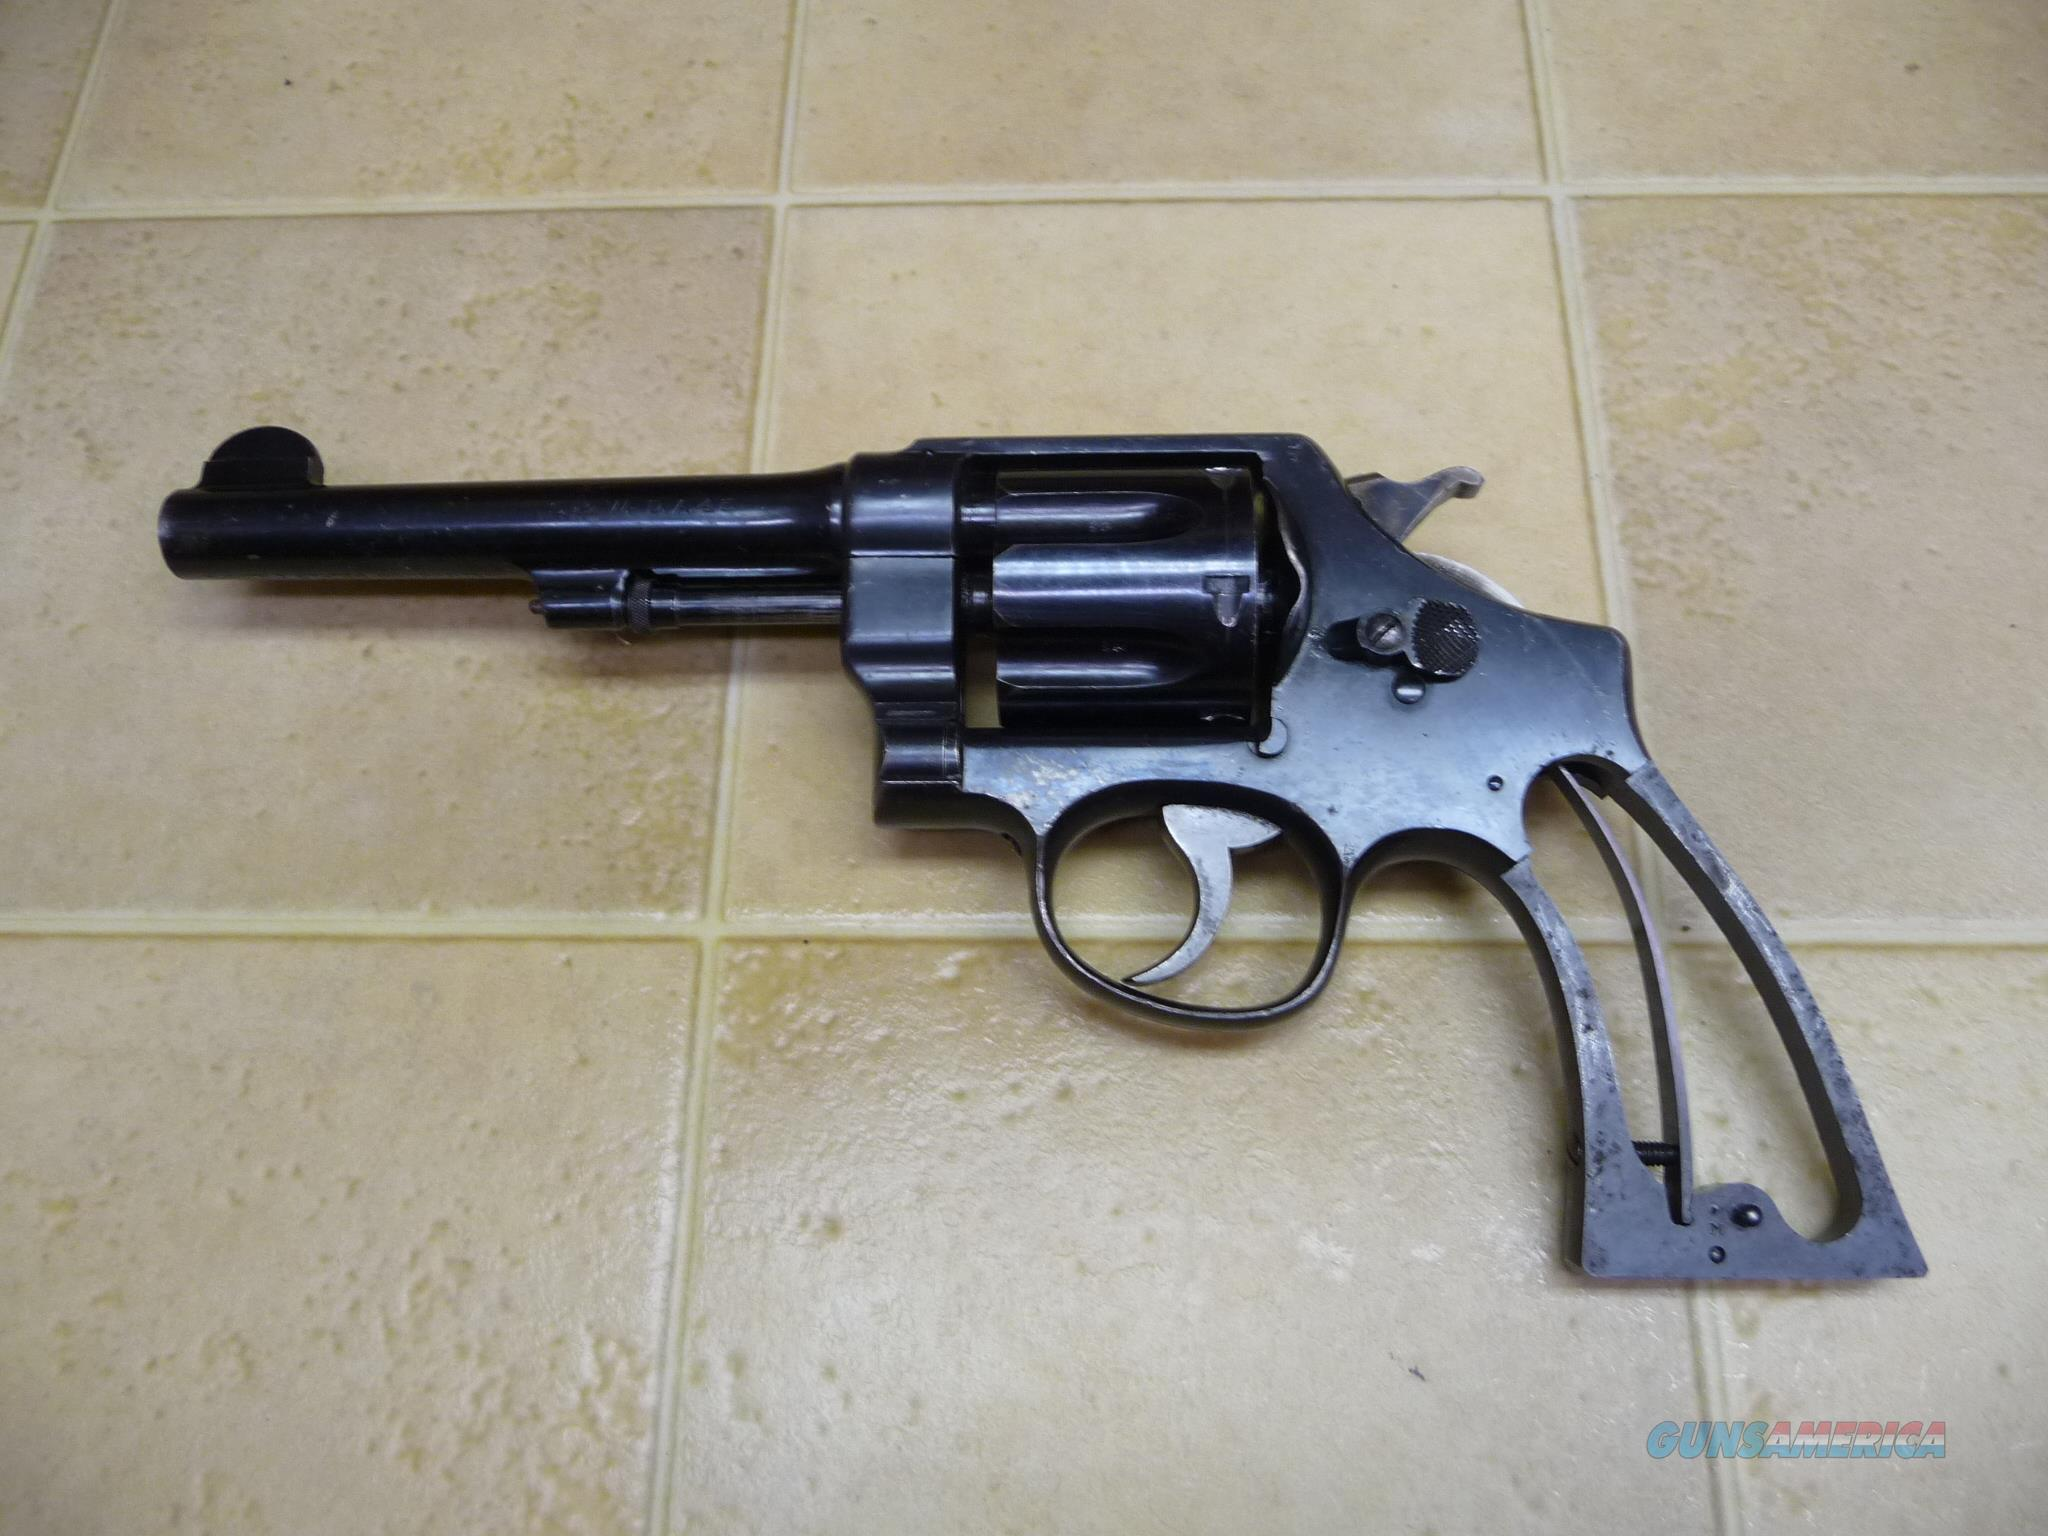 Smith & Wesson U.S. Army Model 1917 .45 acp  Guns > Pistols > Smith & Wesson Revolvers > Pre-1945